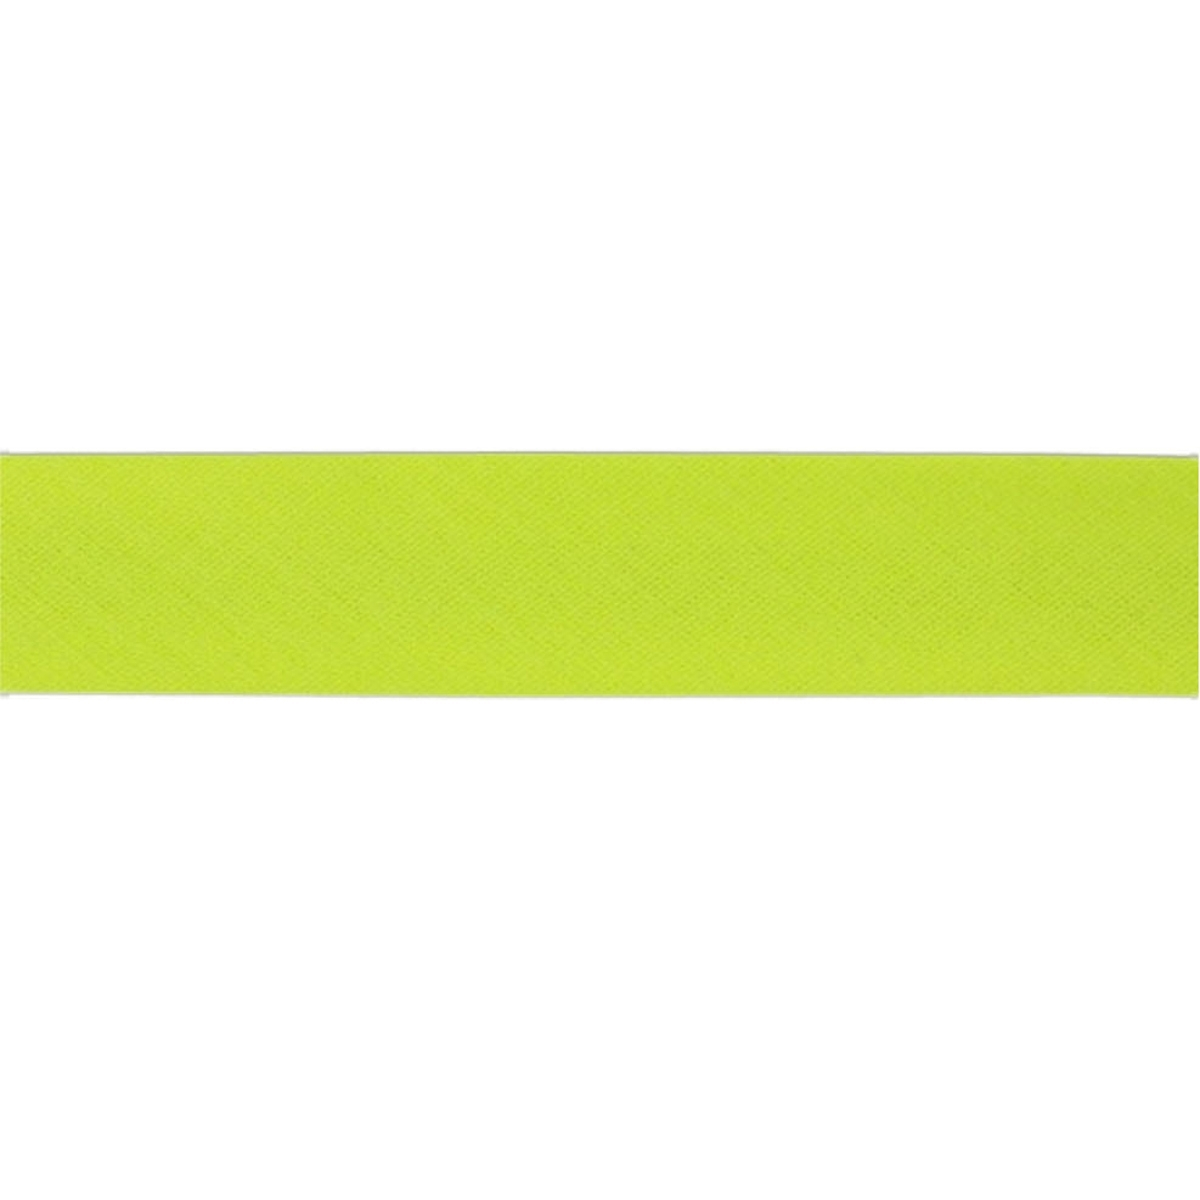 bias tape NEON, yellow | 1774-201 | gelb